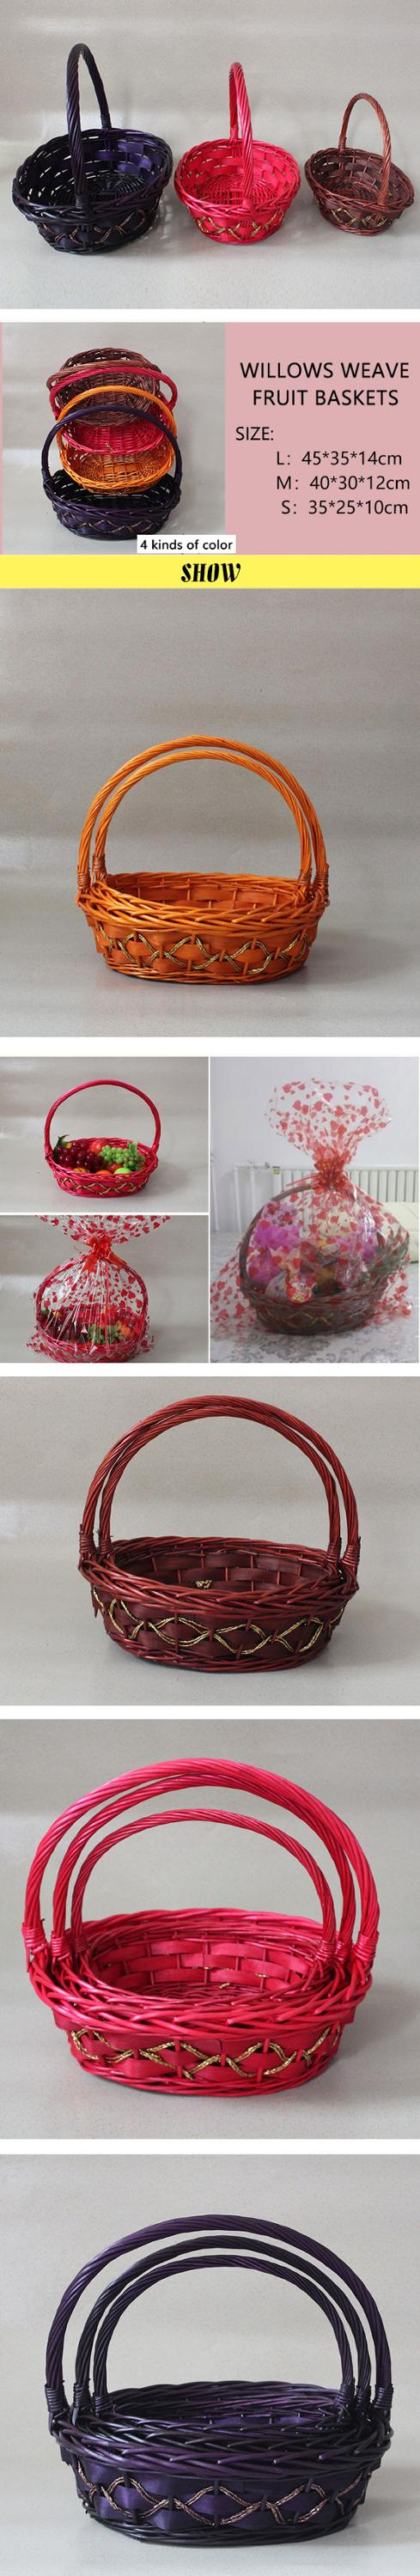 Wicker gift basket handmade wood chip fruit basket with handle set of 3